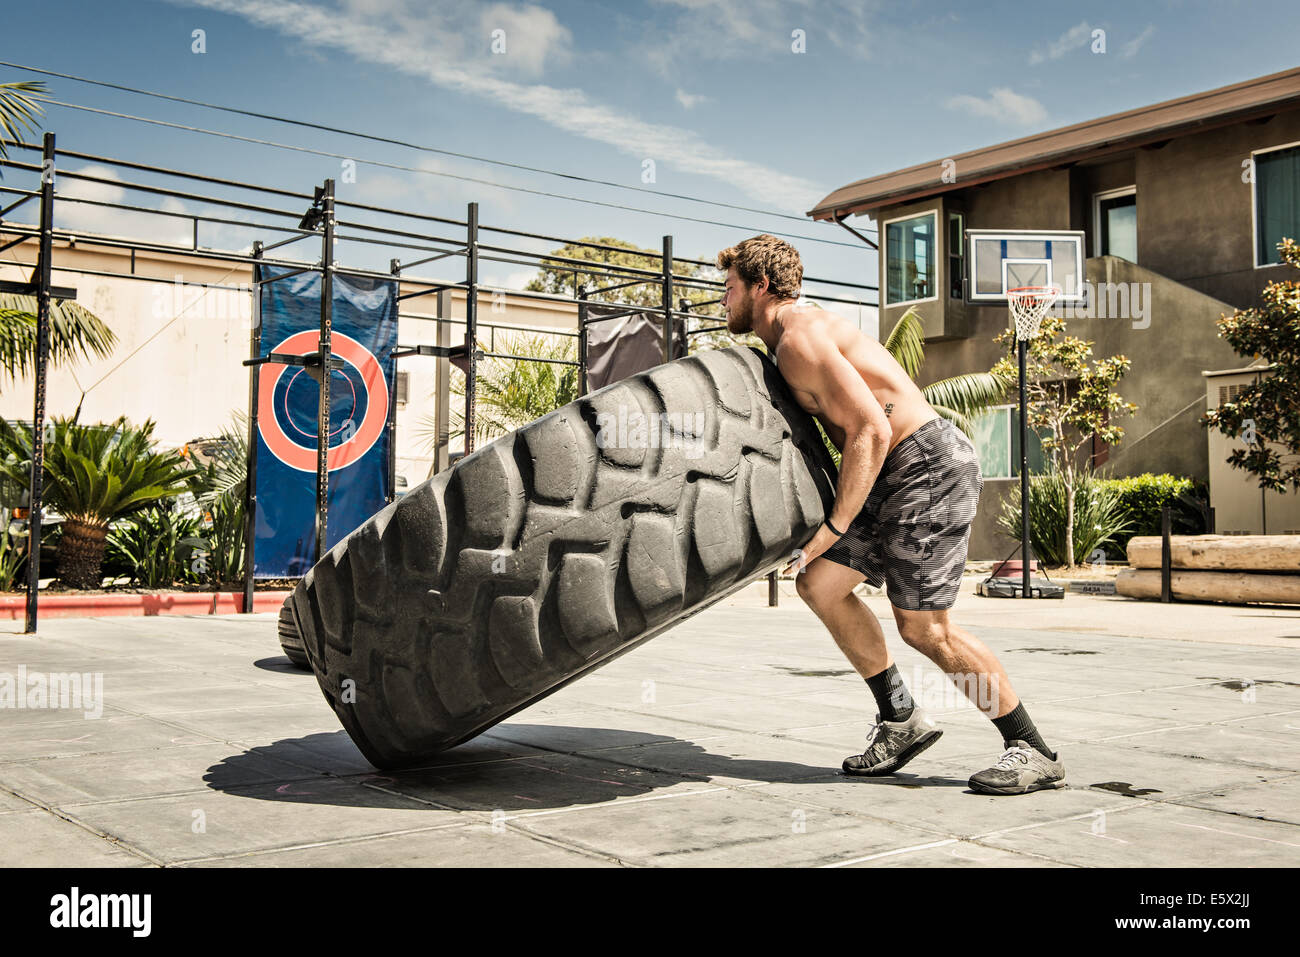 Man lifting énorme roue en basket-ball Photo Stock